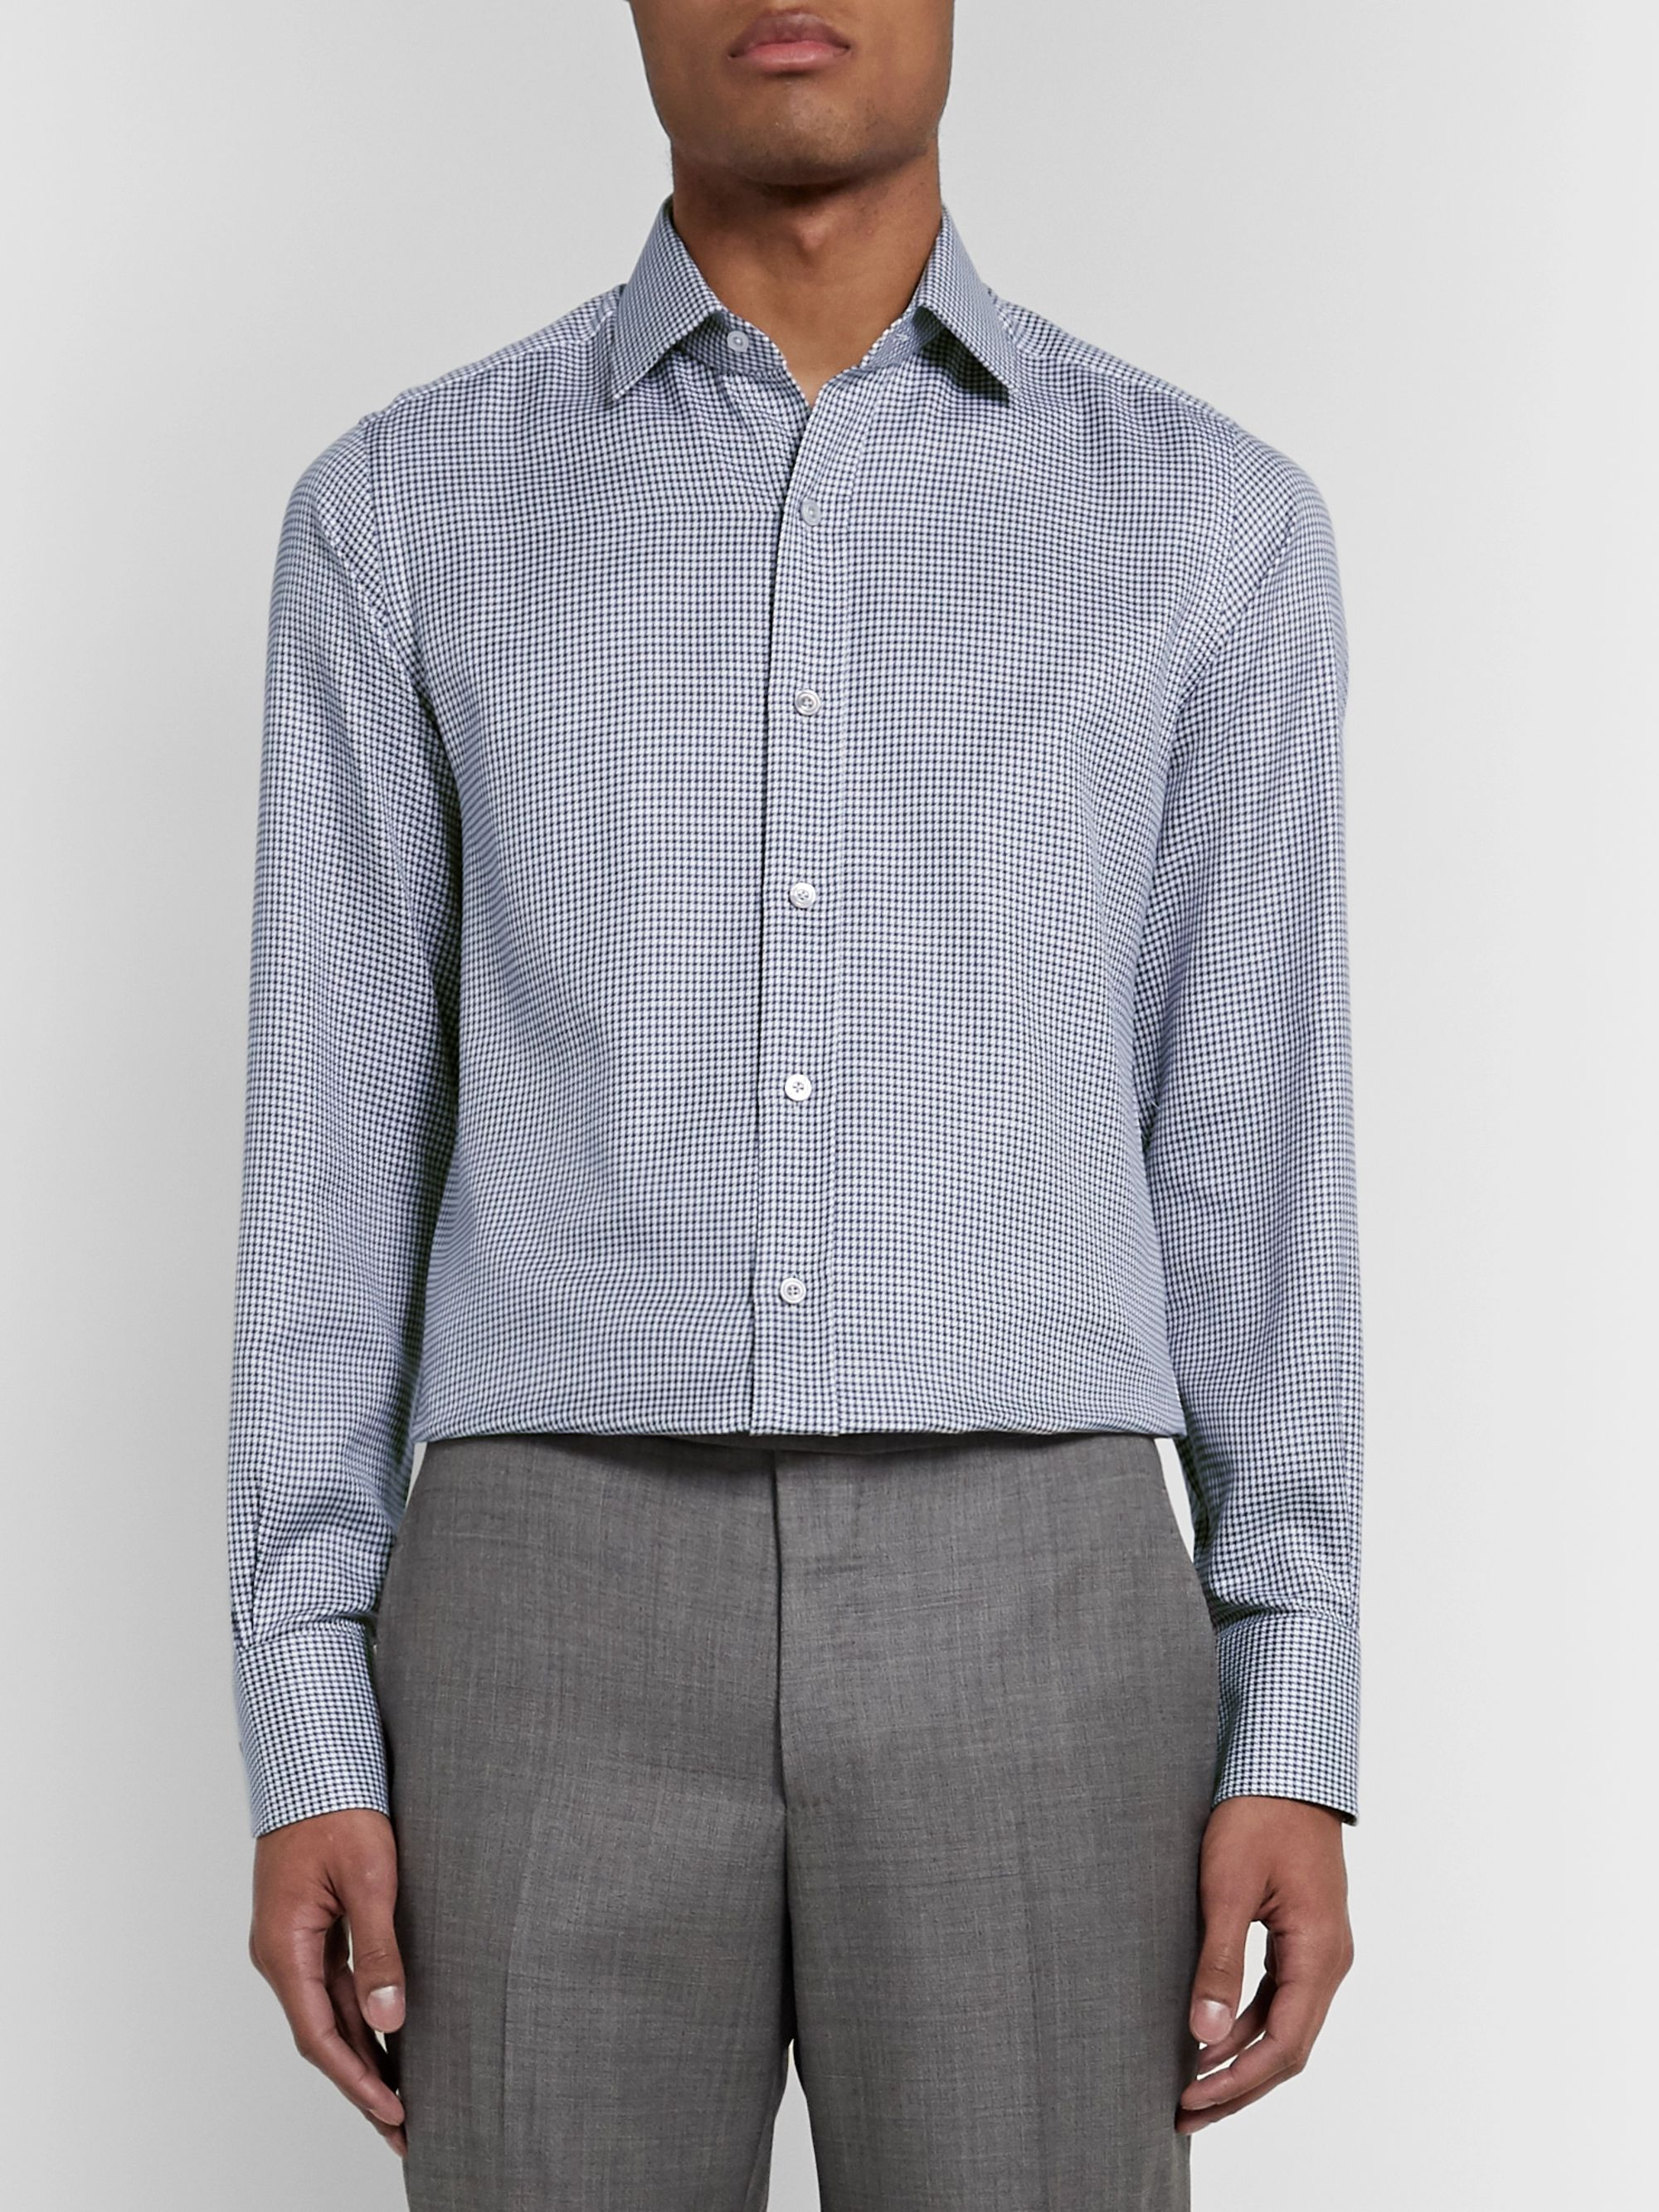 TOM FORD Blue Slim-Fit Cutaway-Collar Puppytooth Cotton Shirt